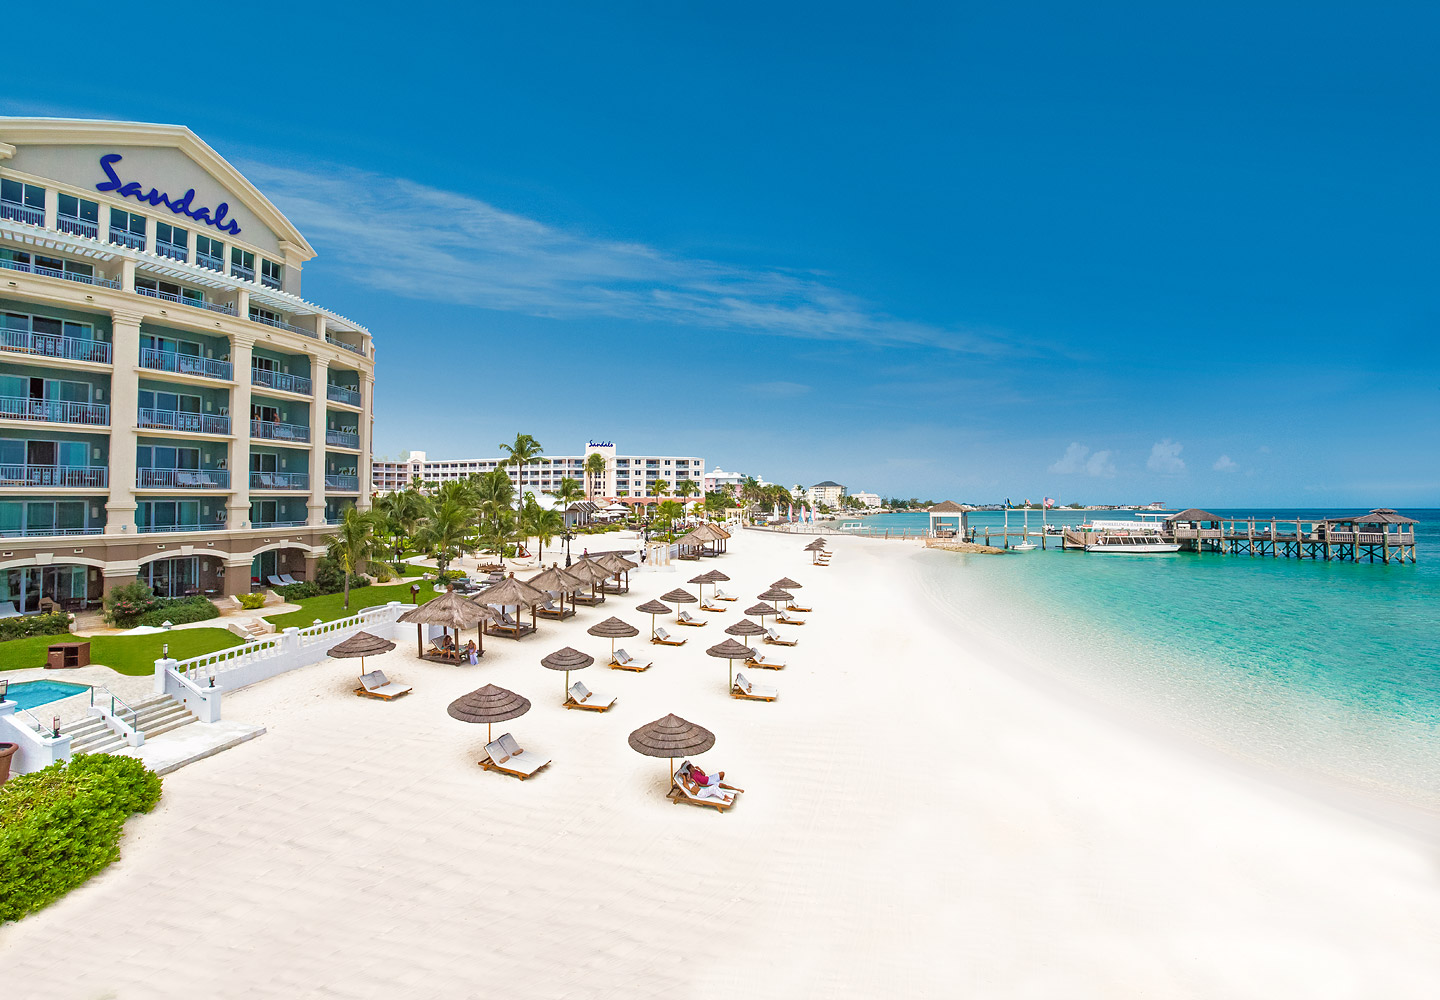 Beautiful Couples Cobannas Lining The White Sandy Beaches Outside Of The All Inclusive Sandals Royal Bahamian Resort In Nassau, Bahamas.